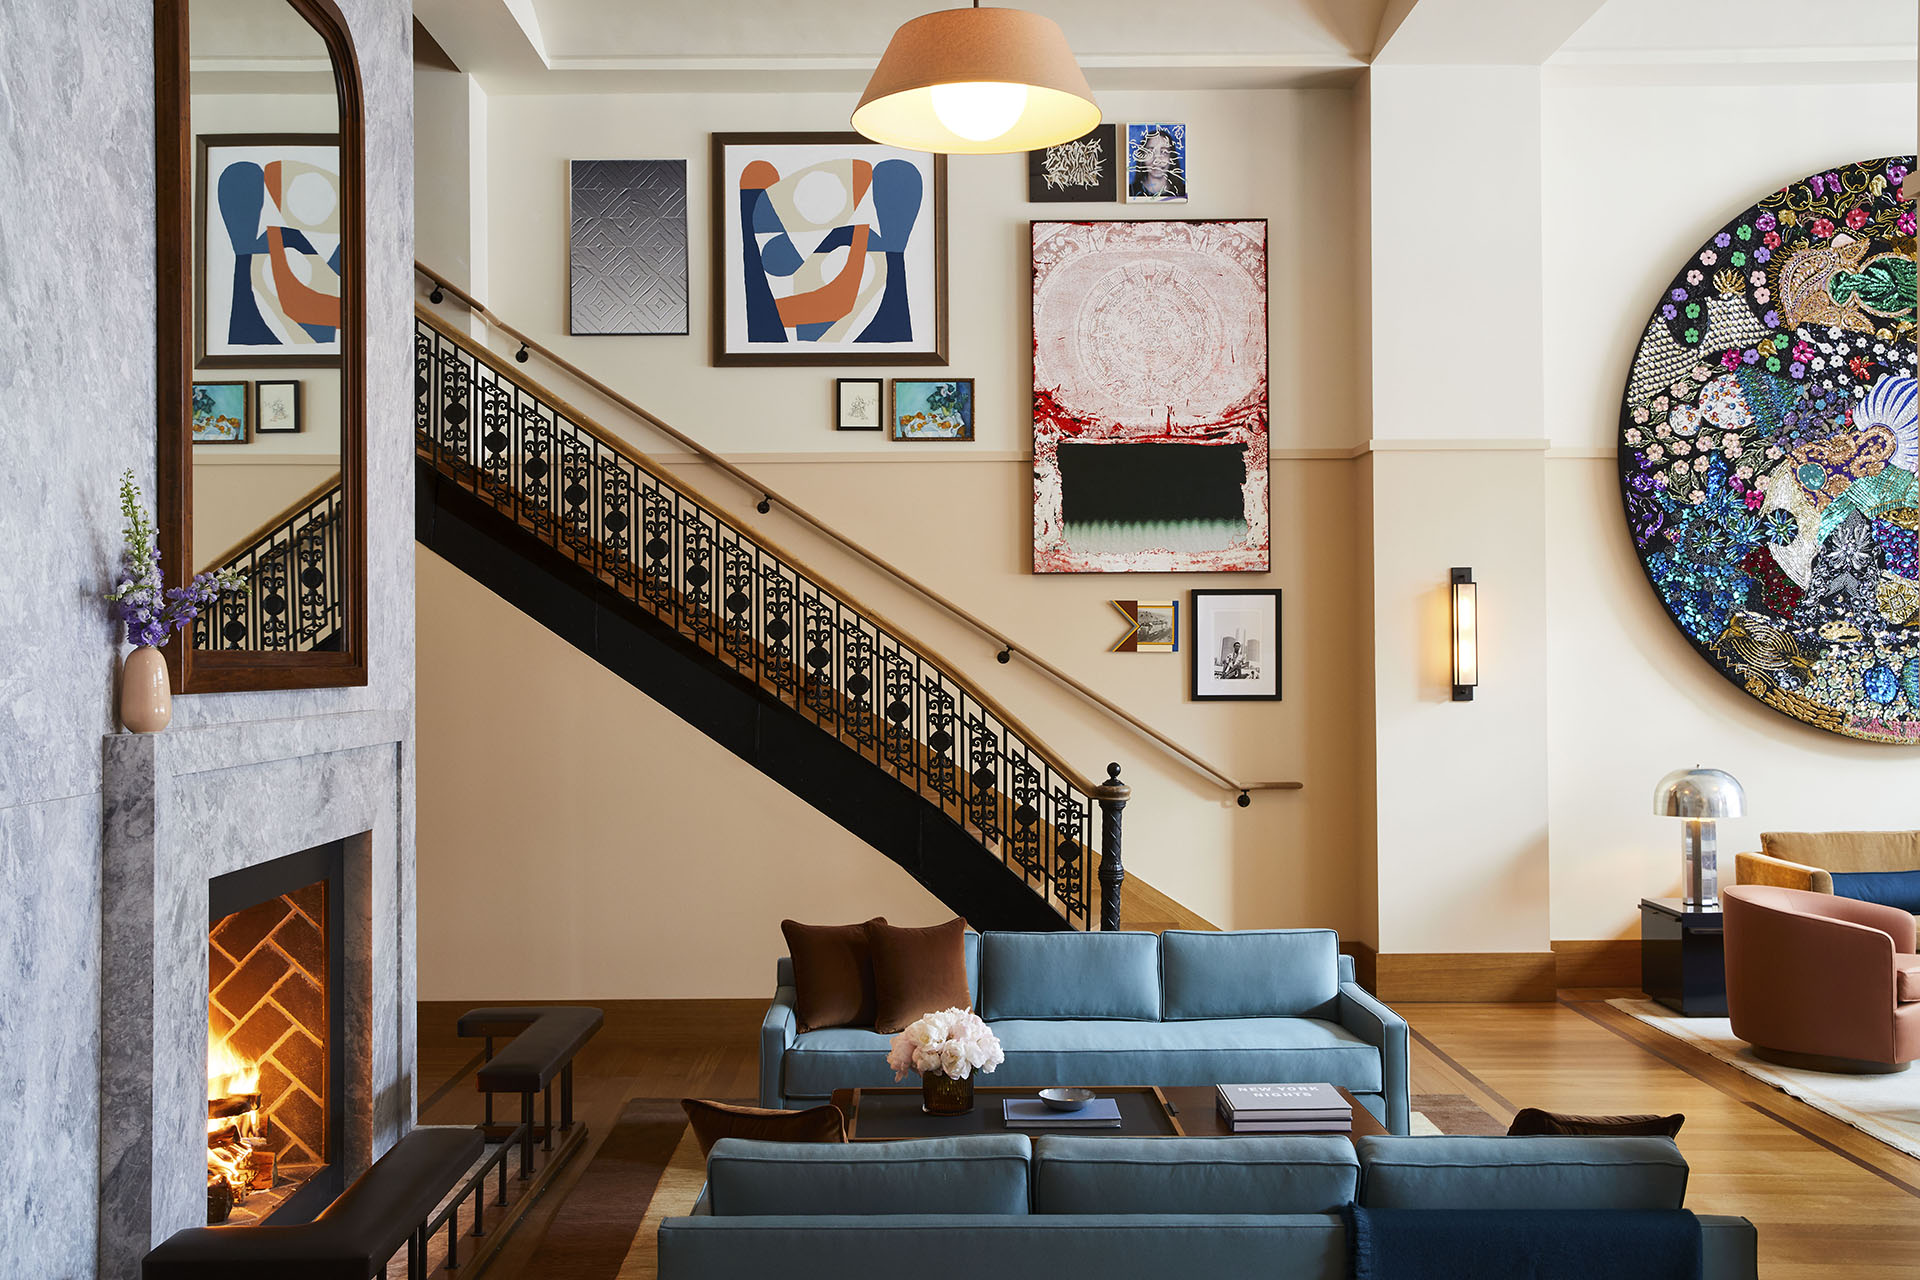 The living room is a lively, buzzing place at the iconic Shinola Hotel | Shinola Hotel| Gachot Studio | STIR